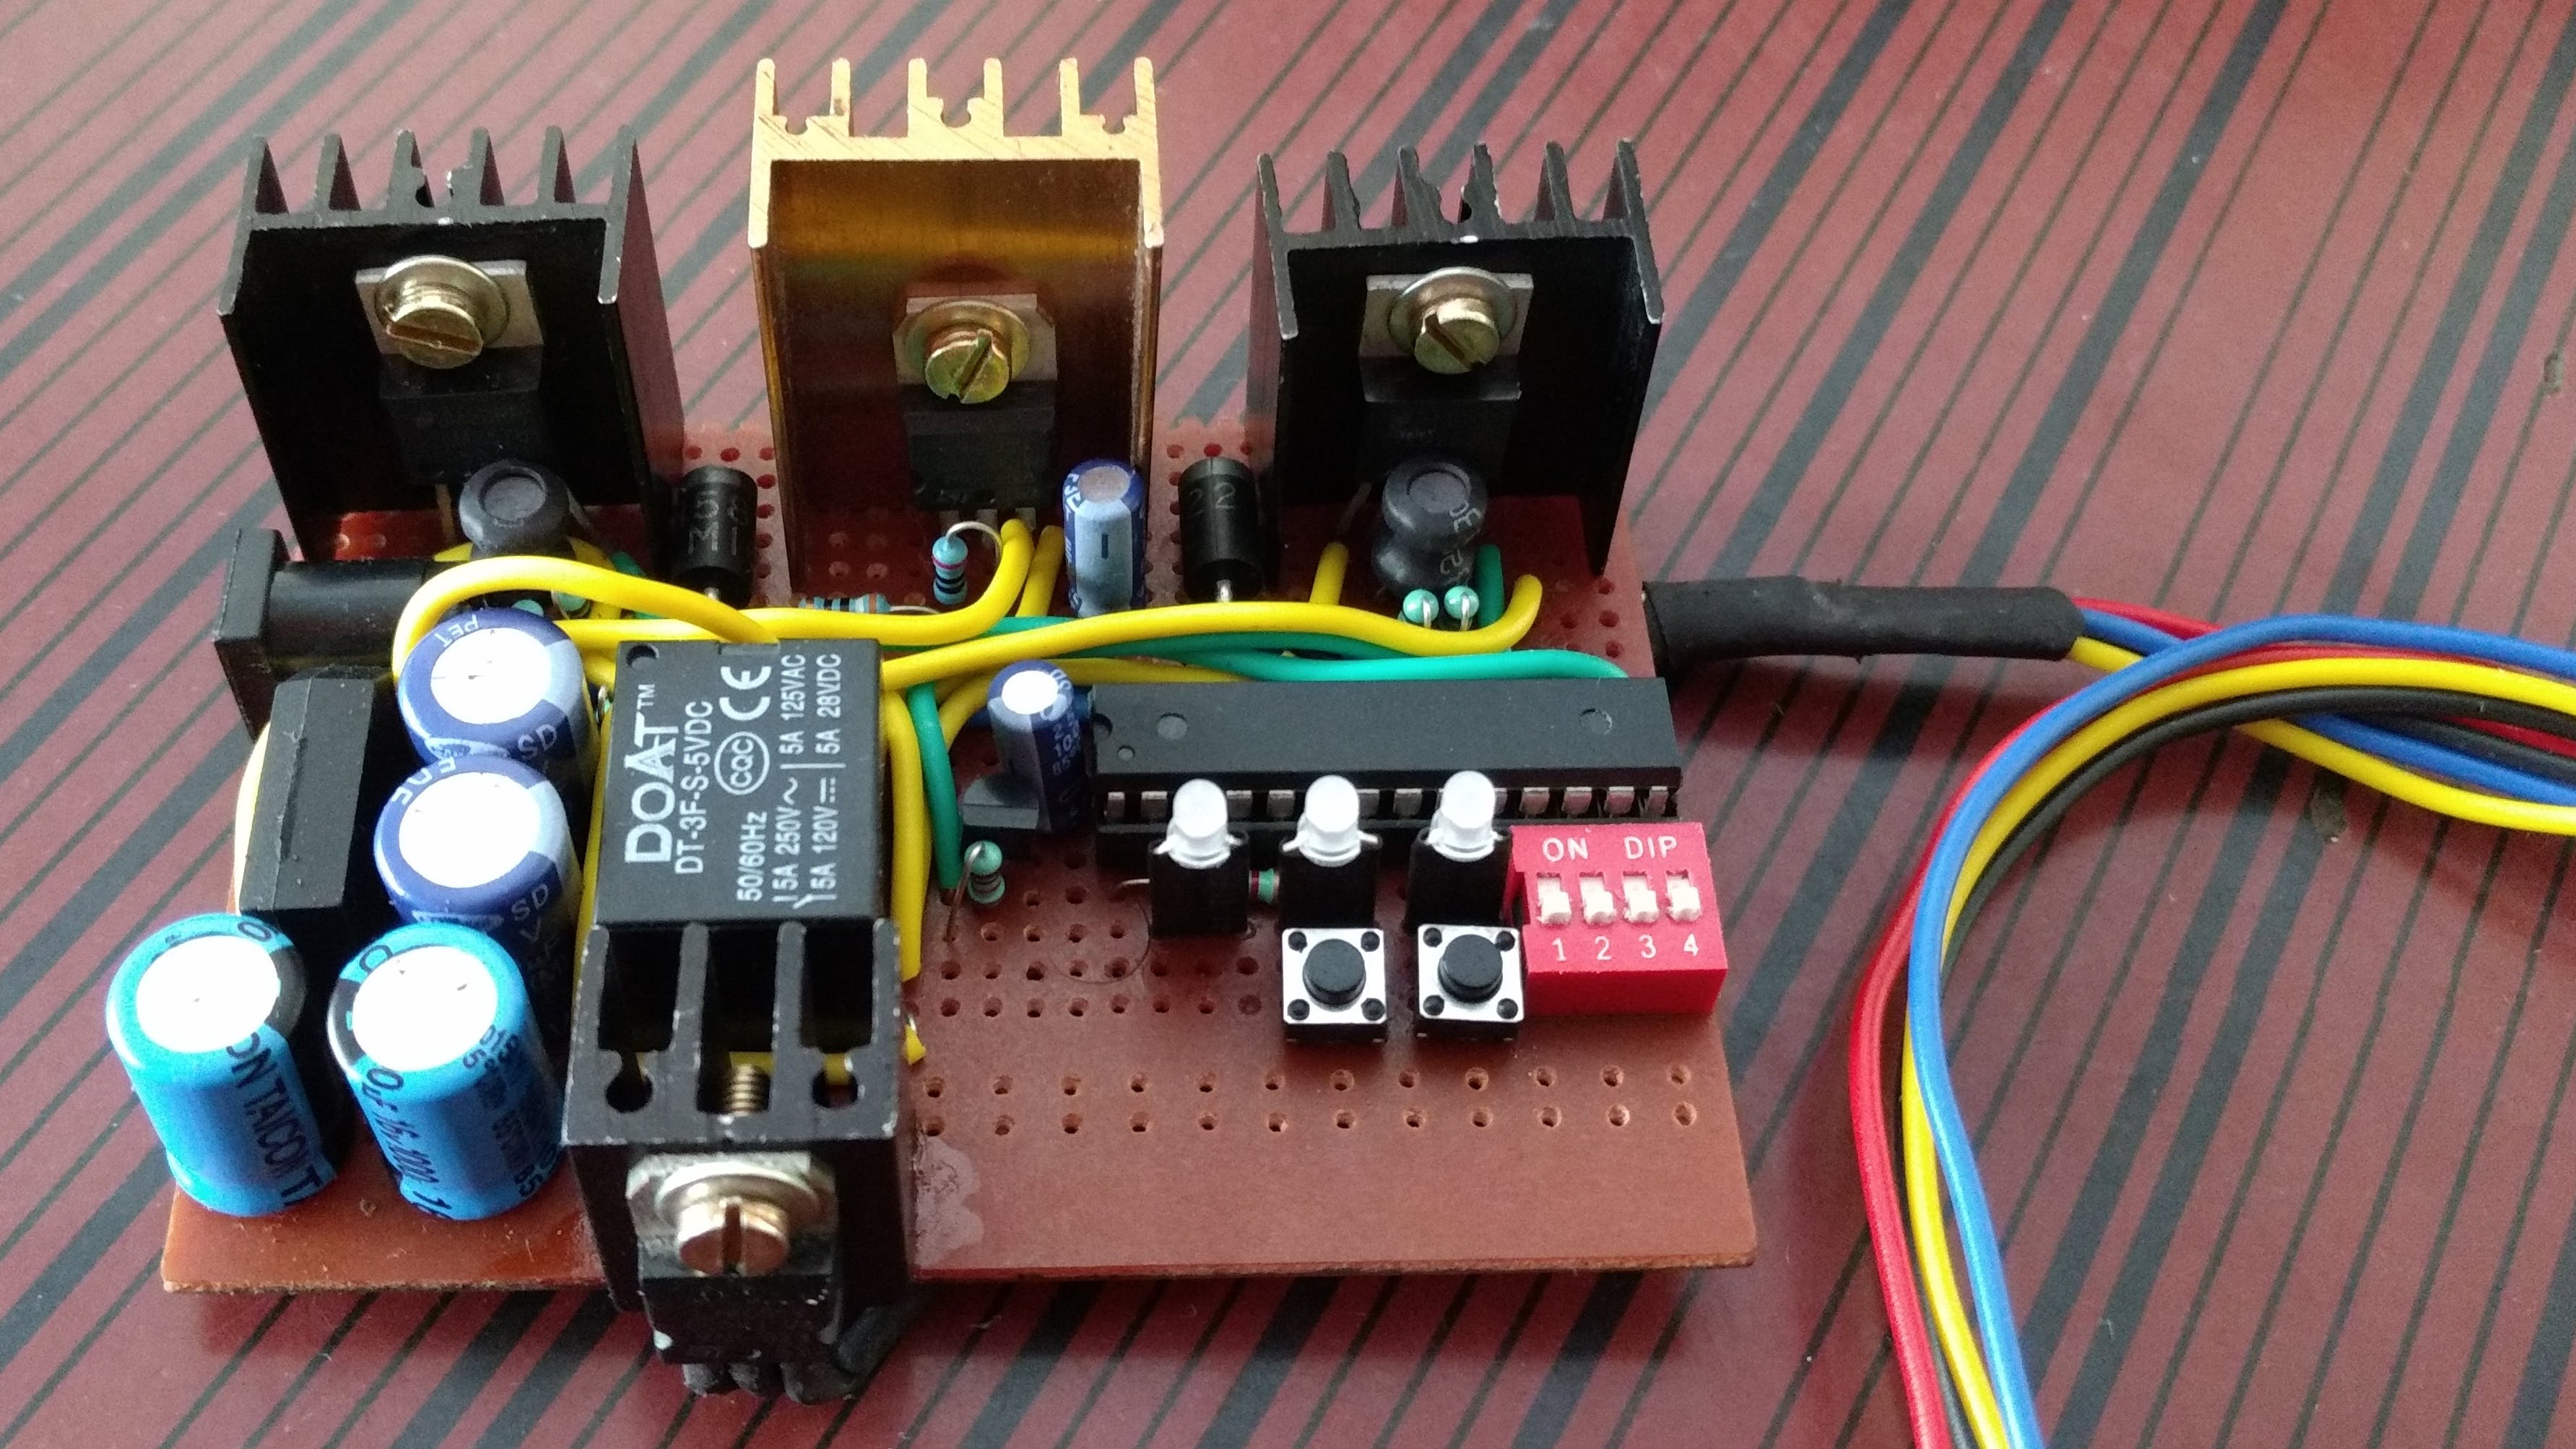 Protected Switching Power Supply for Development Boards